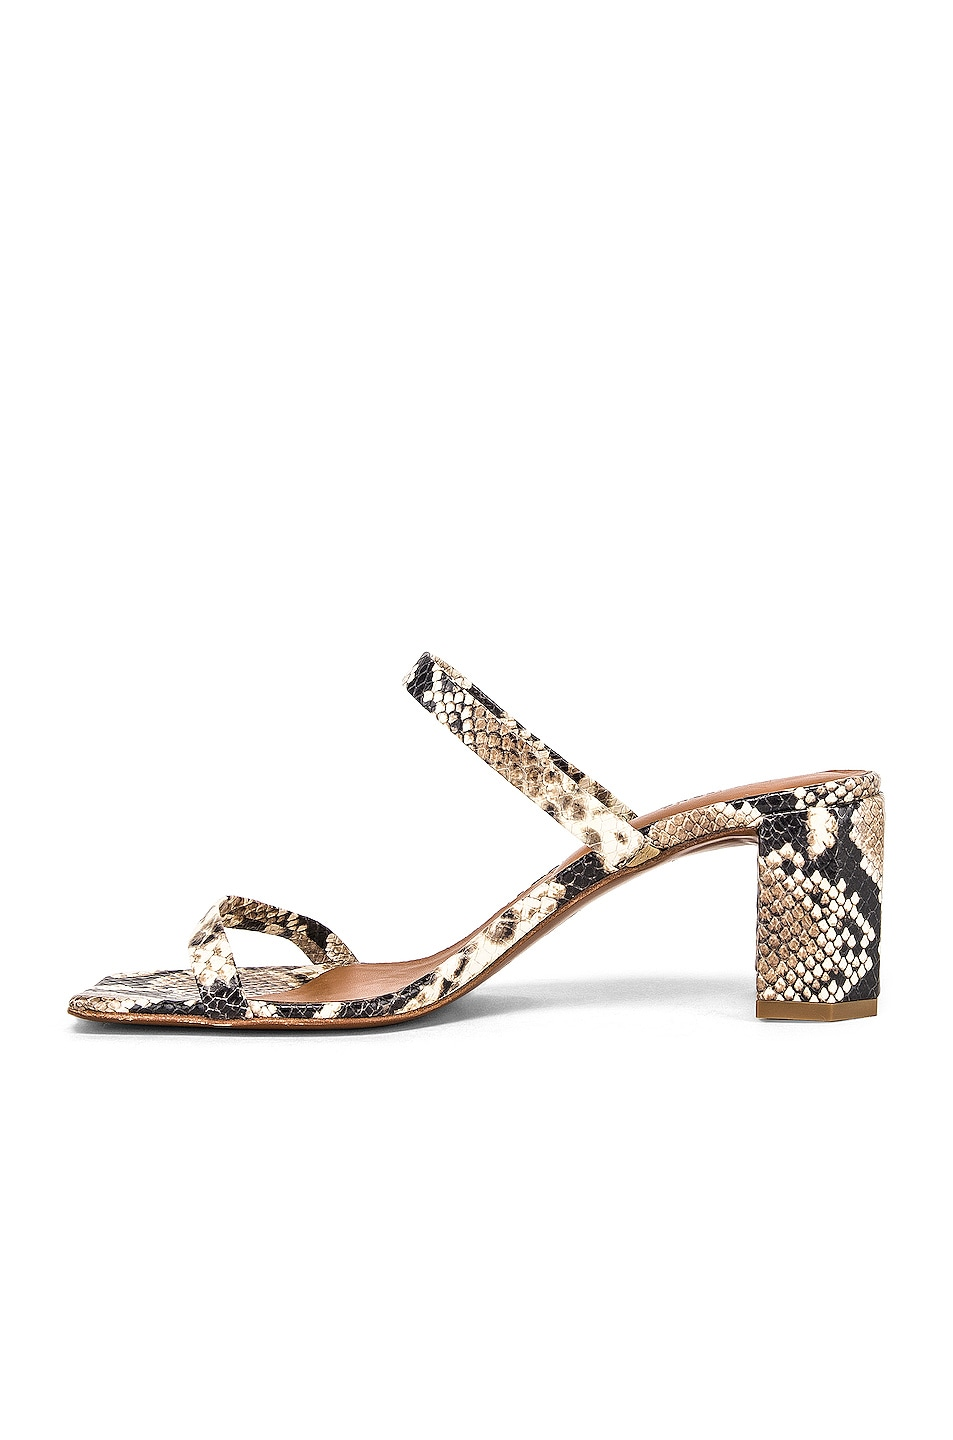 Image 5 of By Far Tanya Sandal in Snake Print Leather